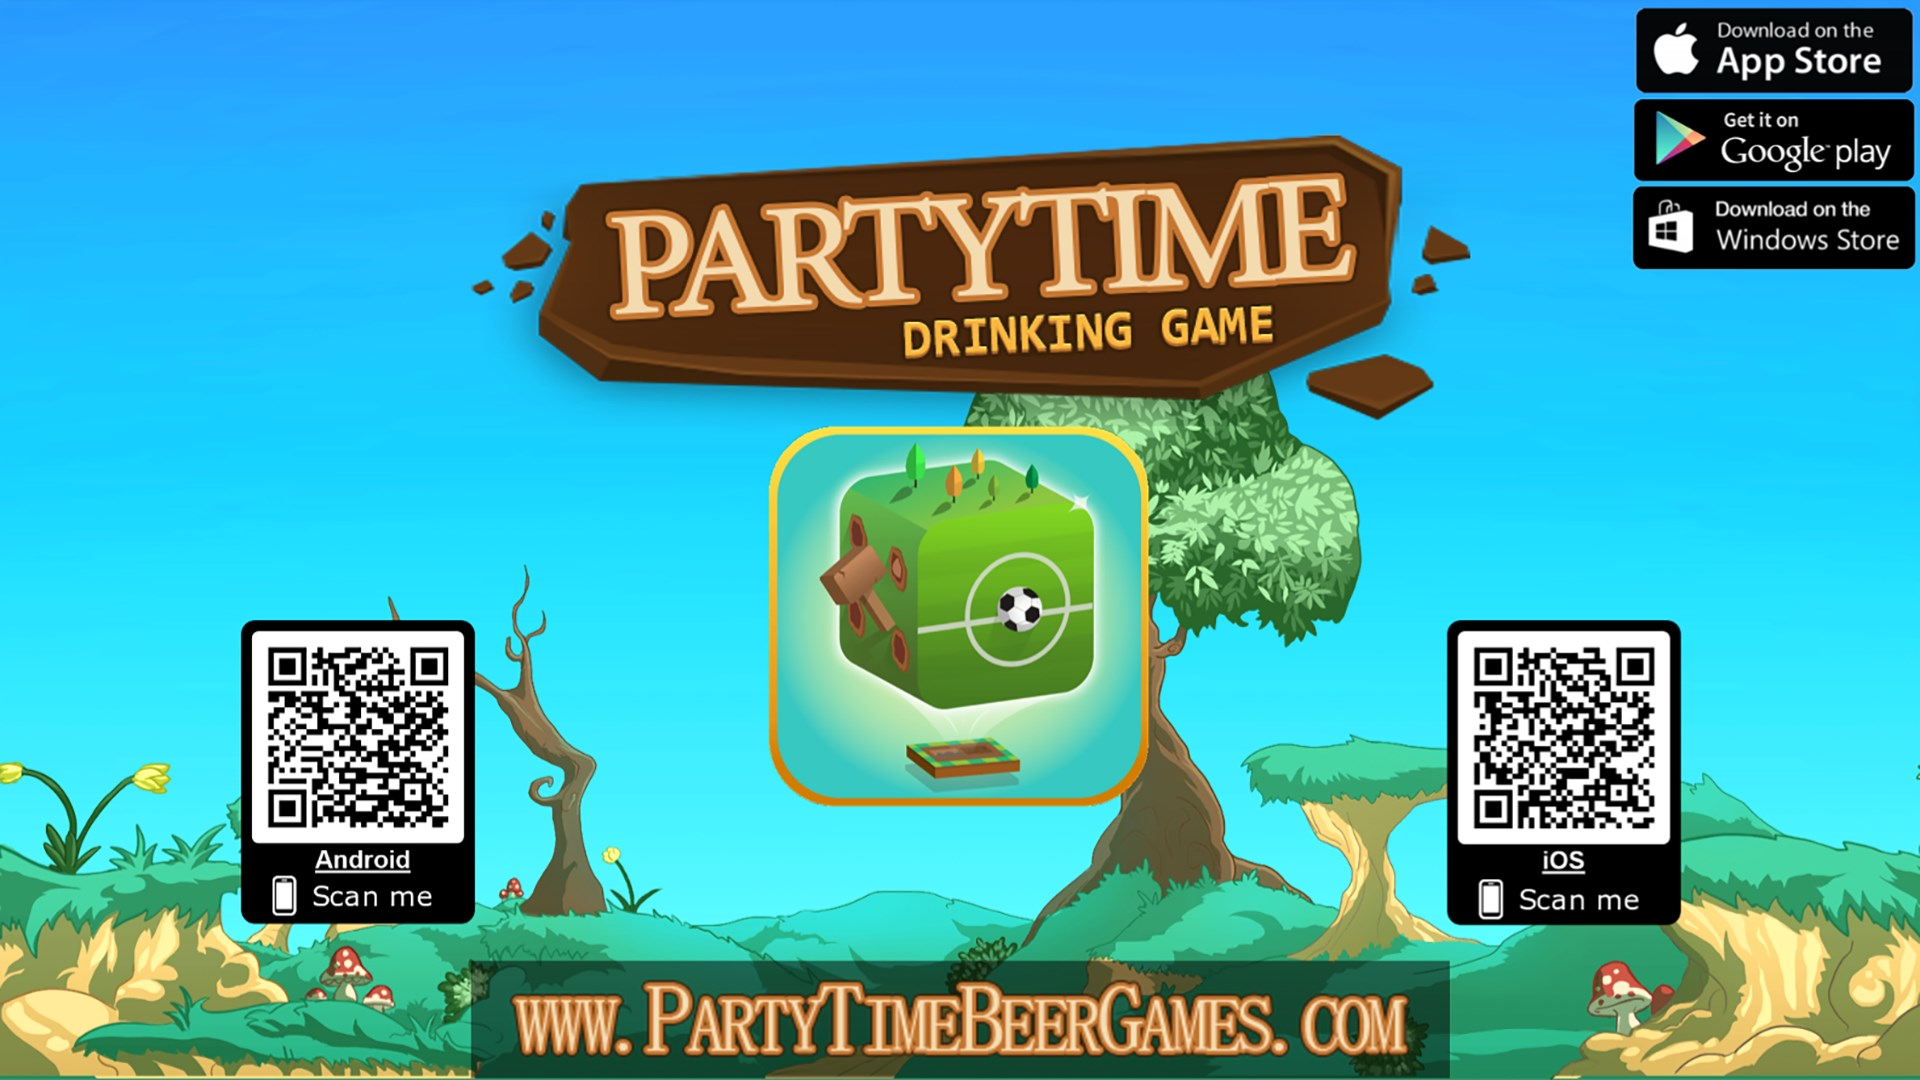 Get Party Time Drinking Game - Microsoft Store